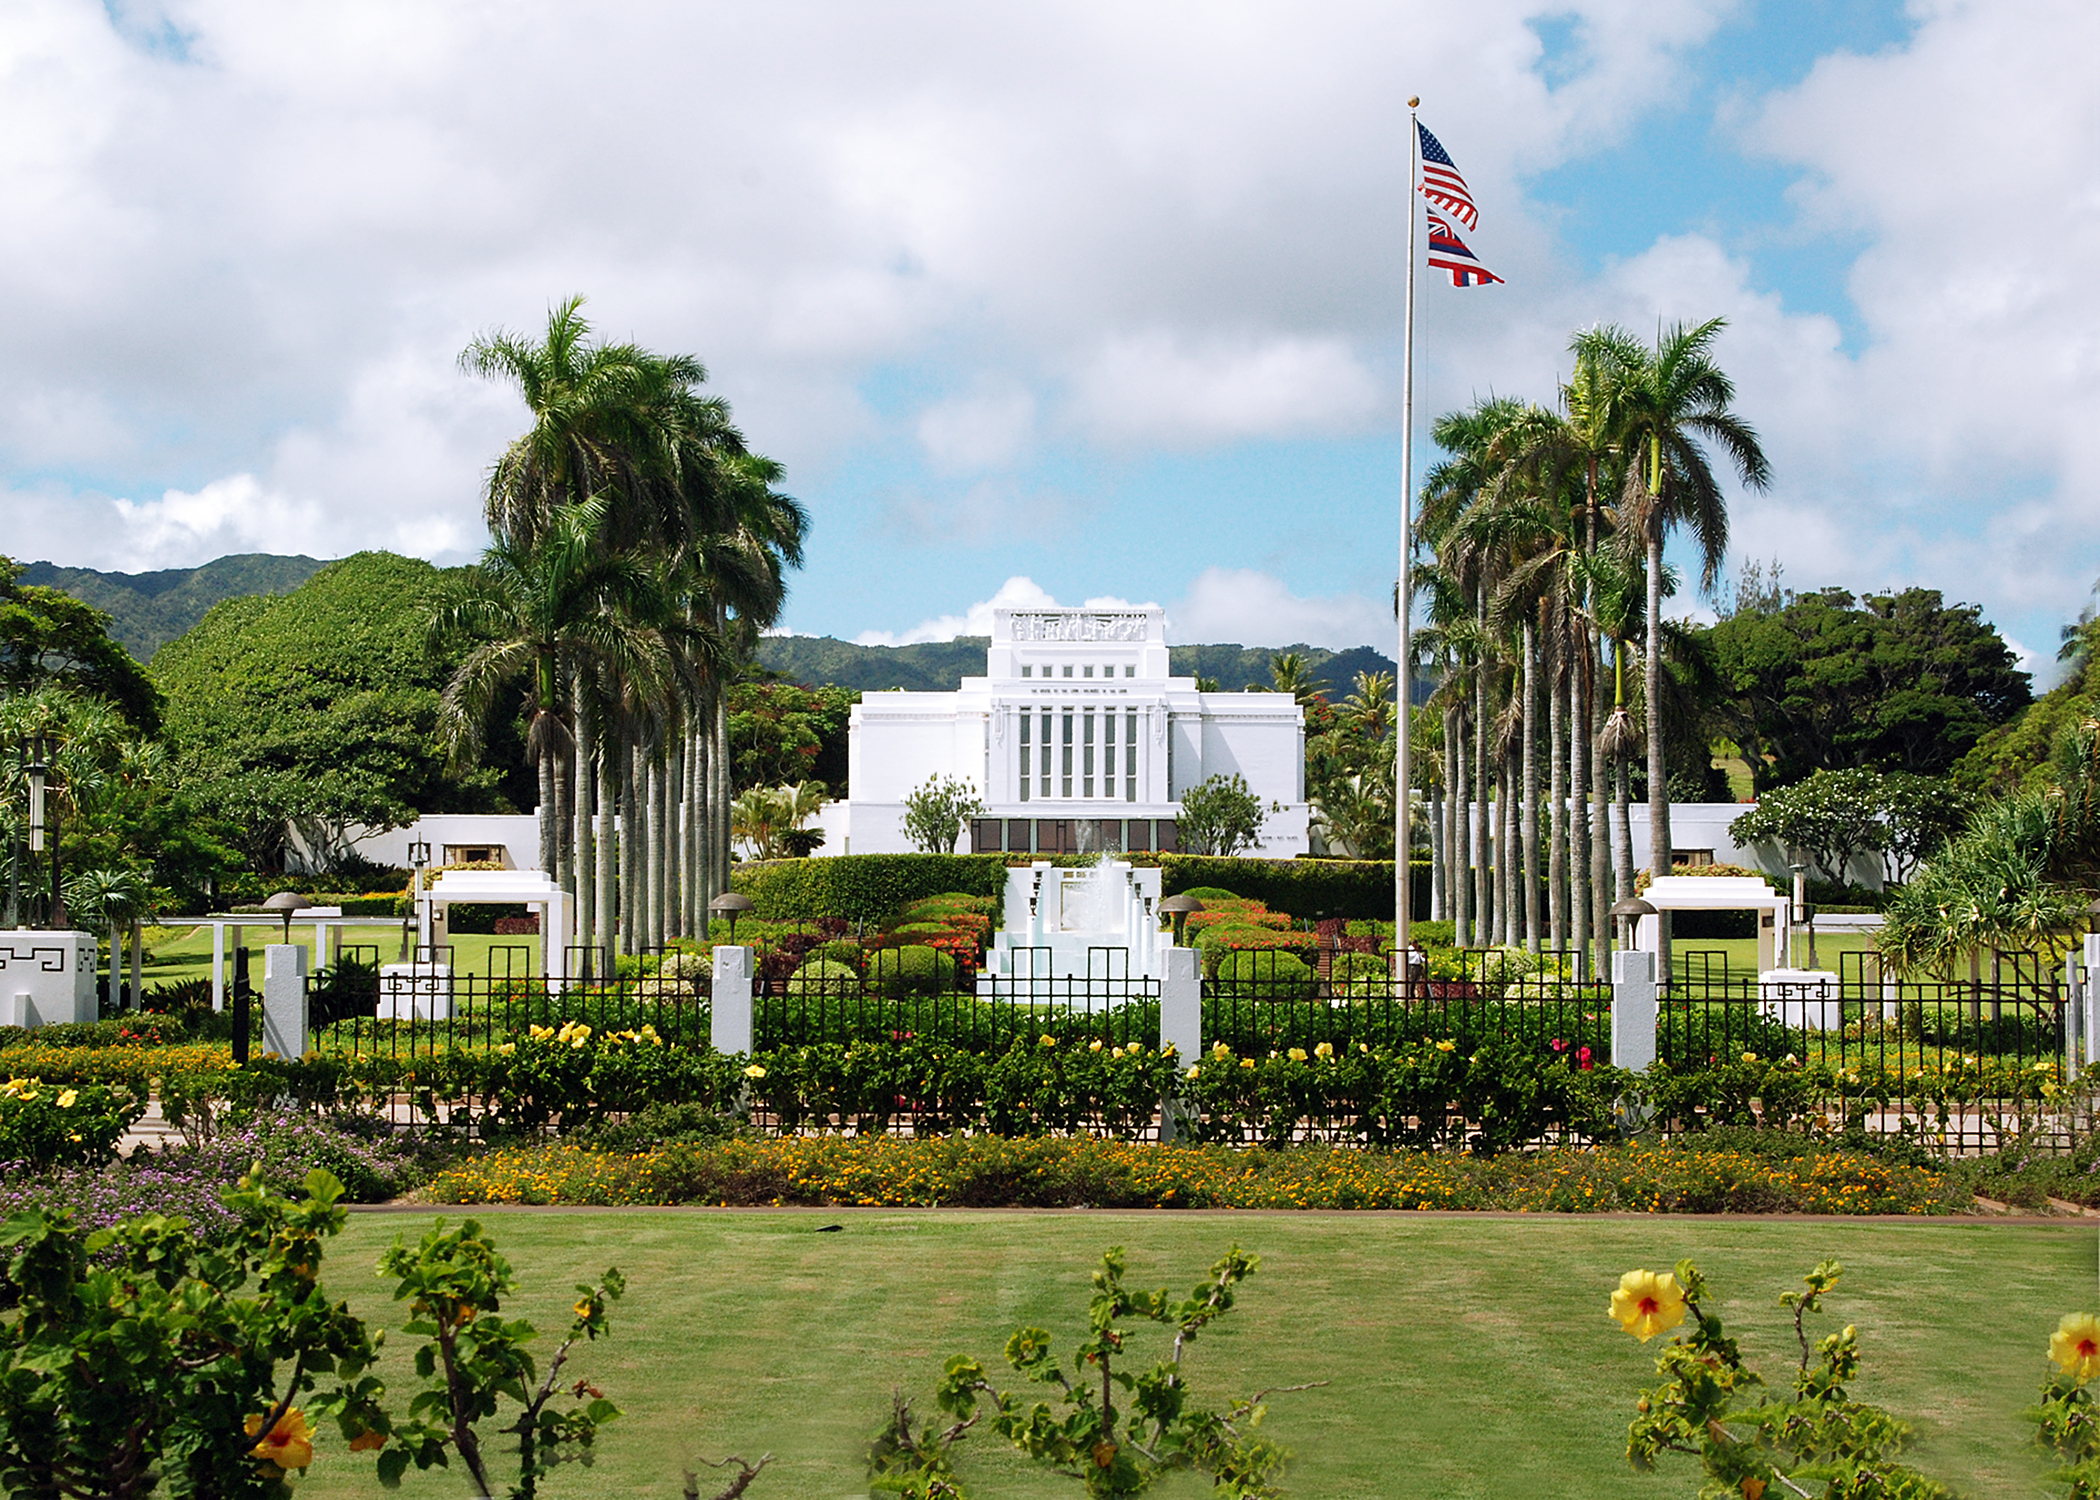 The Laie Hawaii Temple today serves the faithful Saints of Oahu, Kauai (the Kona Hawaii Temple has served the rest of Hawaii since 2000) and the Marshall Islands in the Western Pacific. When it firs opened in 1919, it served all of Hawaii, the South Pacific islands and Asia.